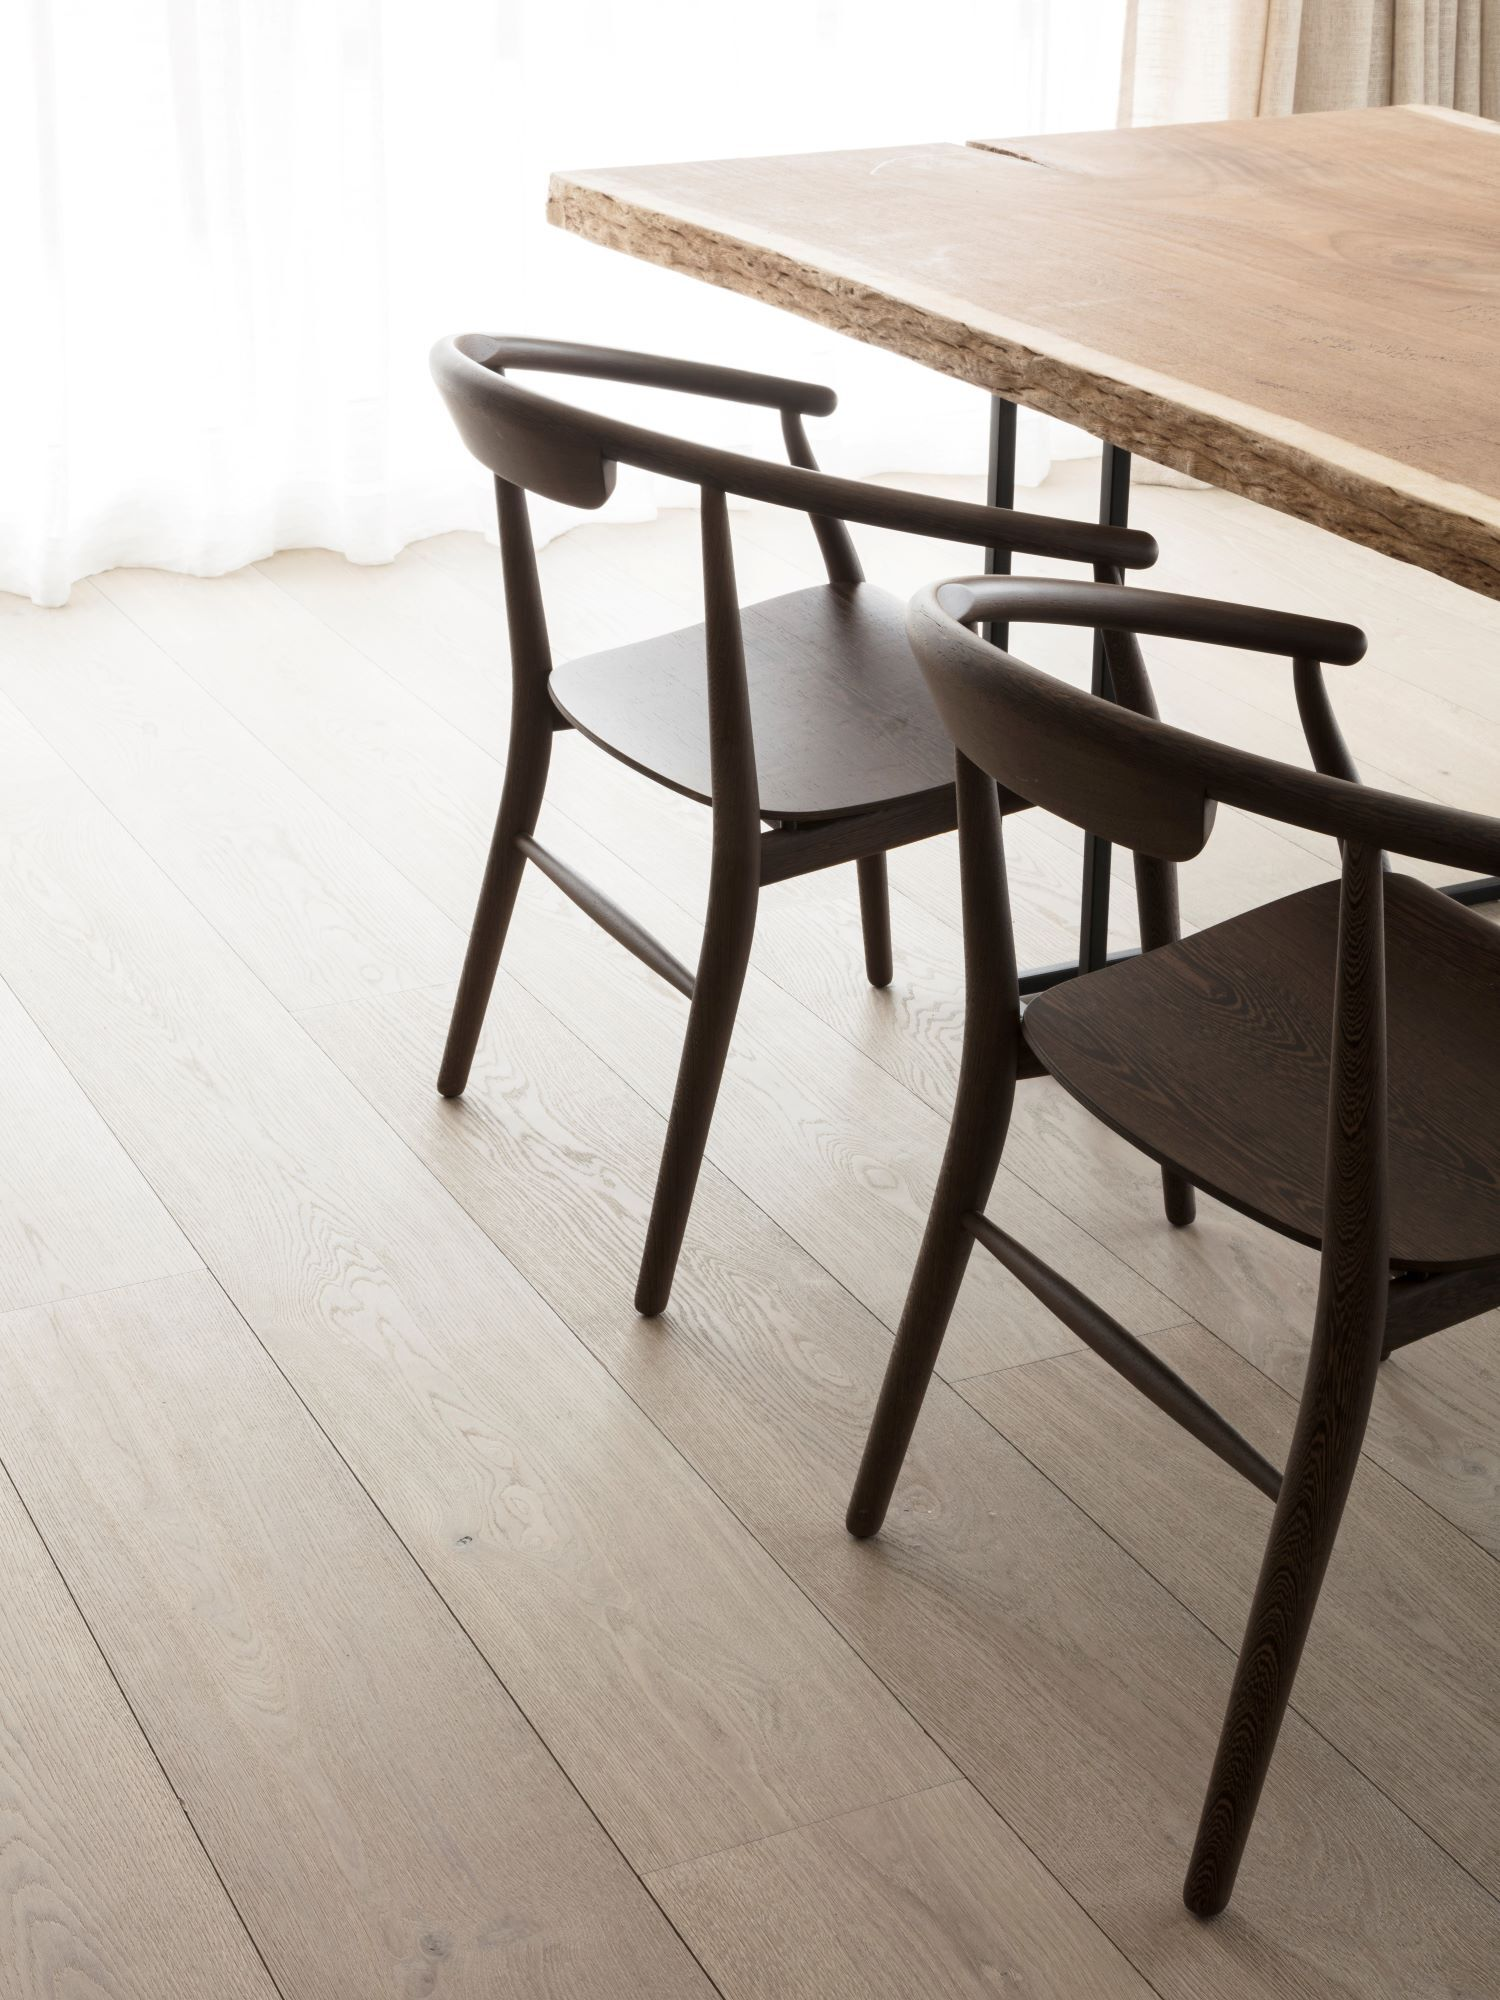 LONDON BLOOMSBURY with dining chairs small